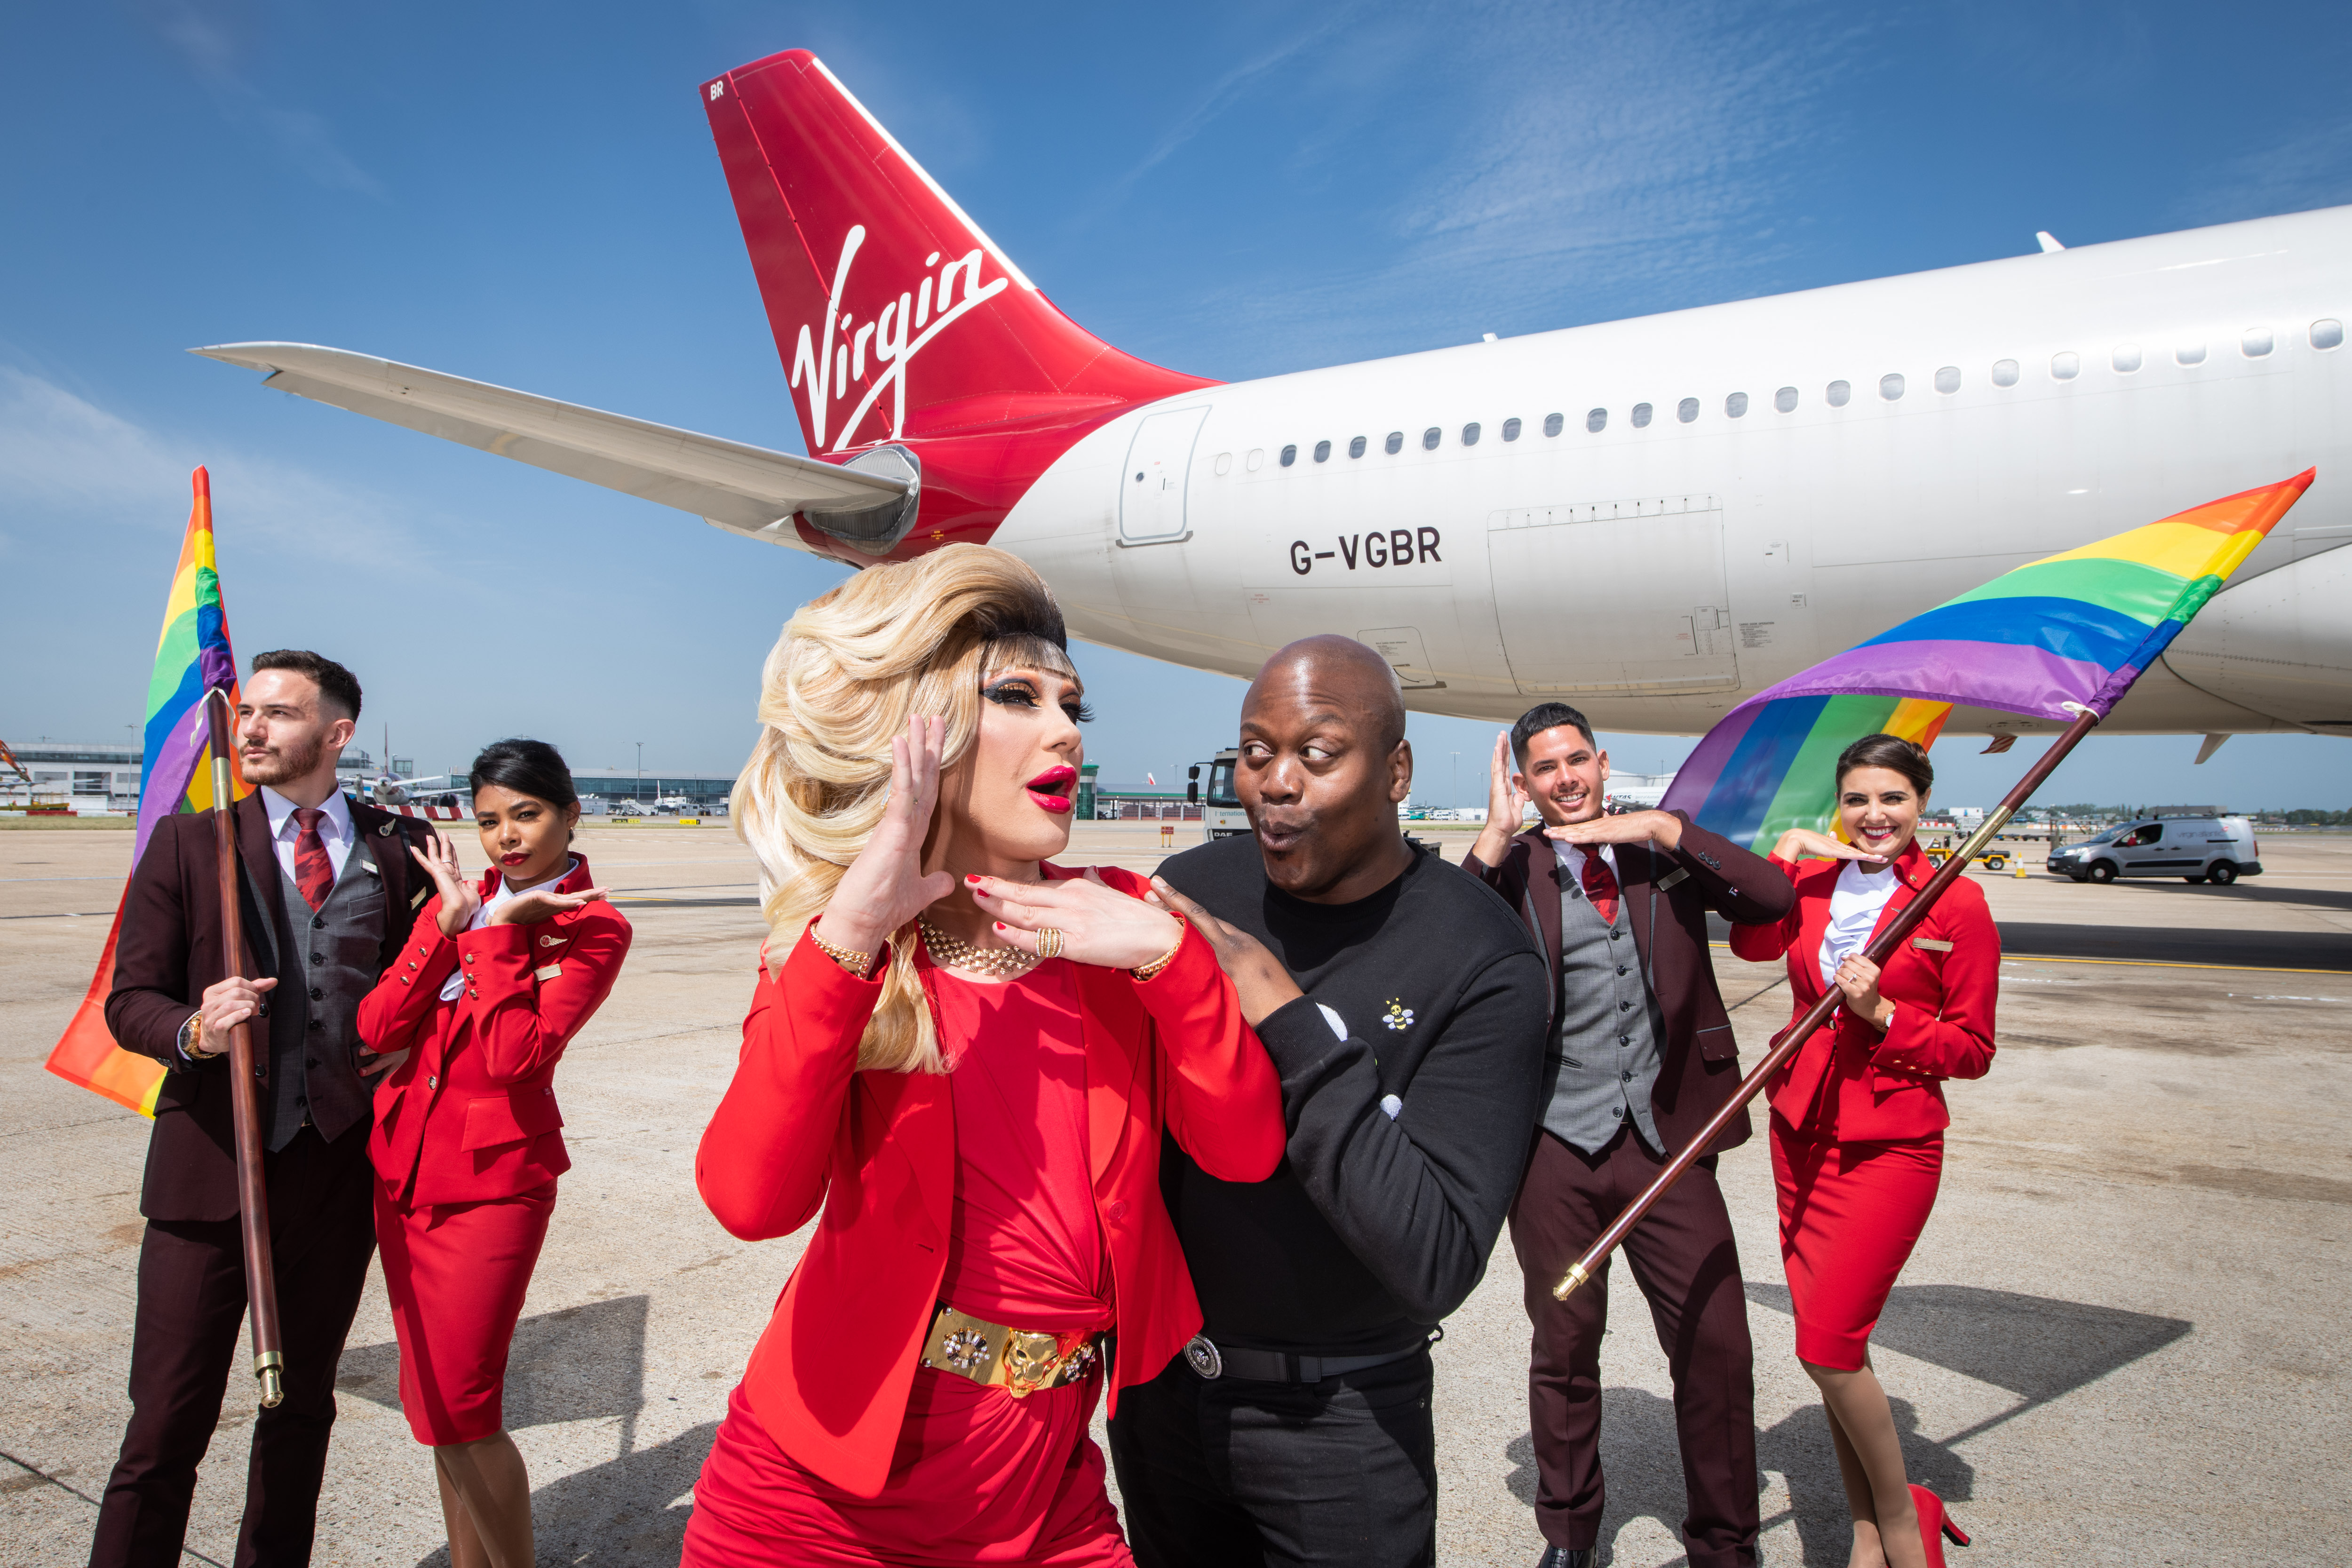 Virgin takes Pride in New York flight